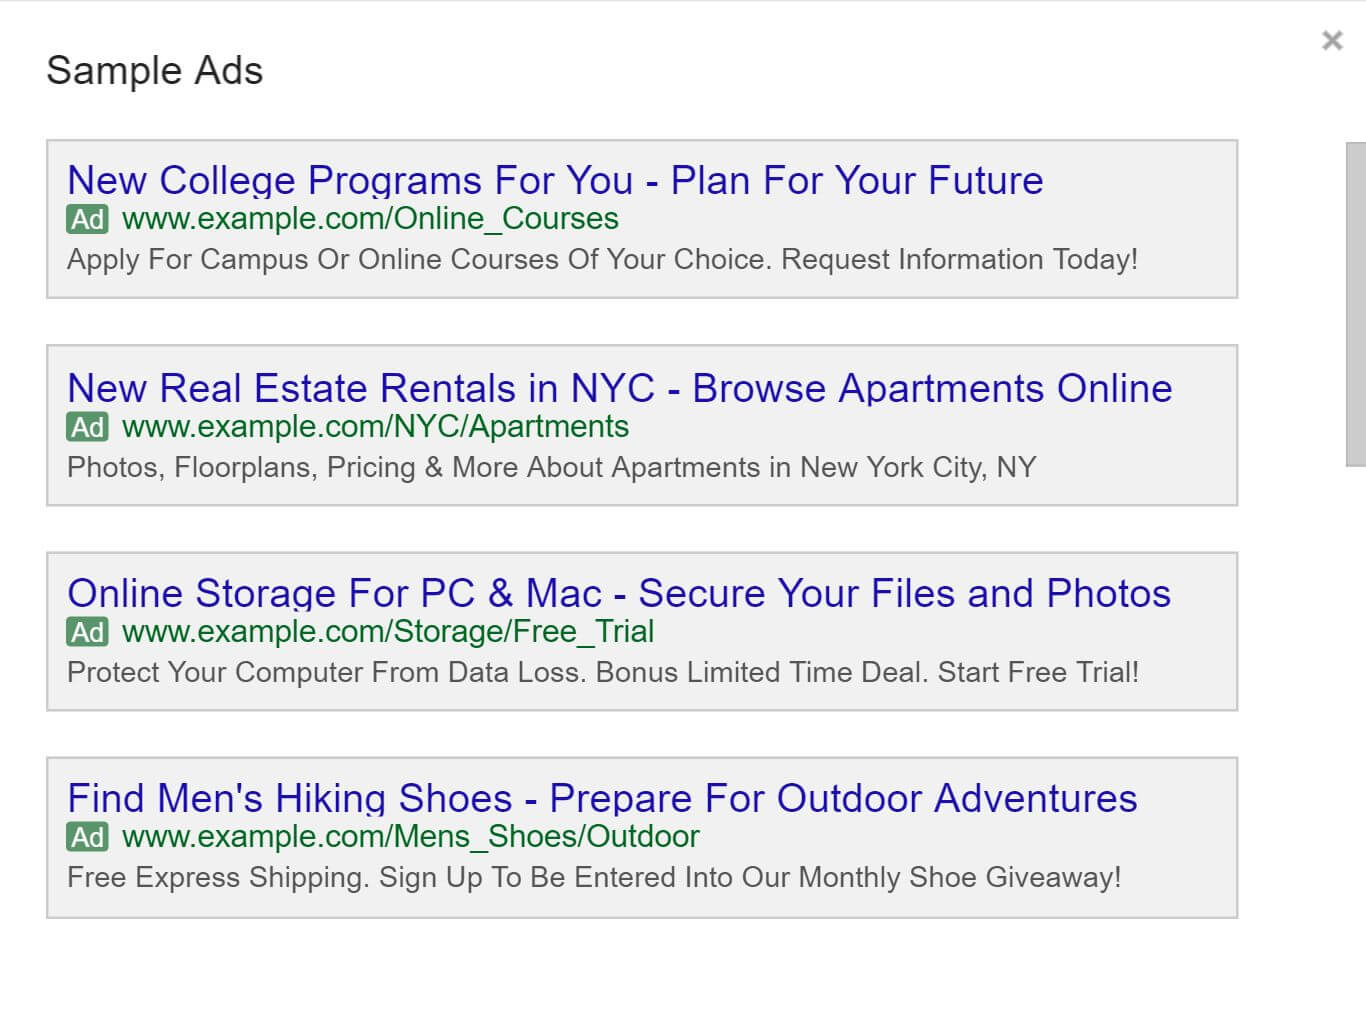 adwords-sample-ads-preview.jpg